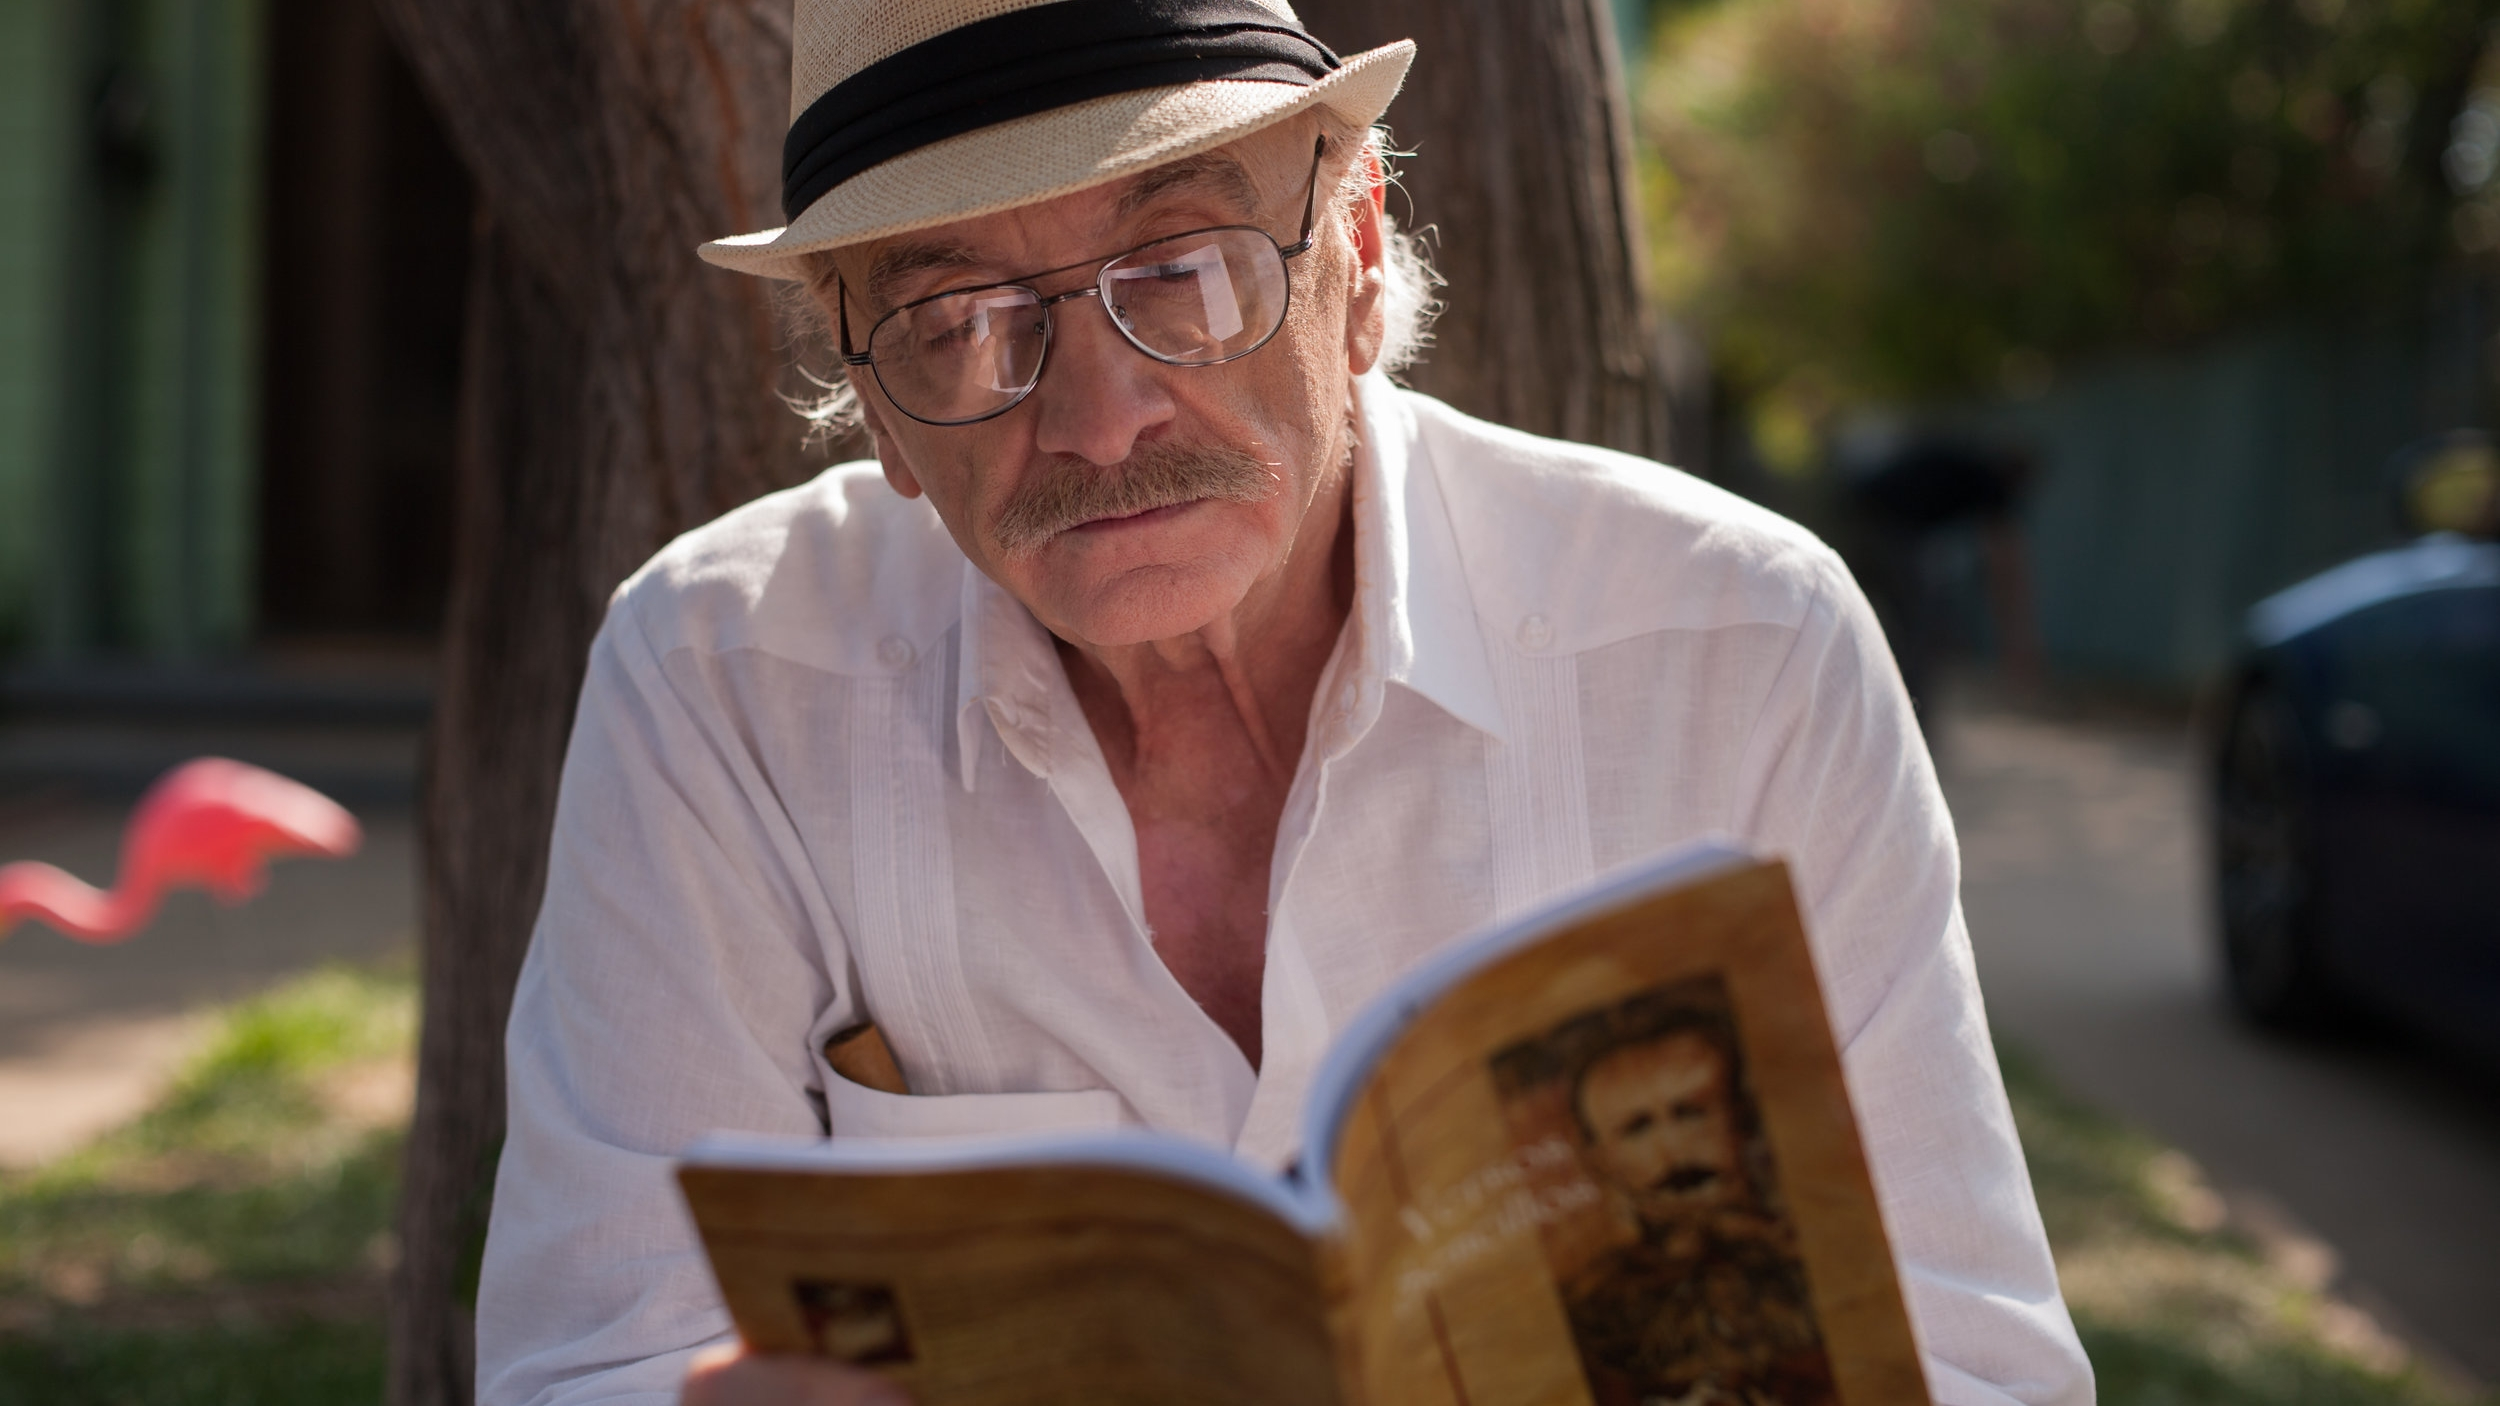 Abuelo (Ruben Rabasa) enjoys a book, cigar, and Cuban coffee while waiting for Vanessa to arrive.